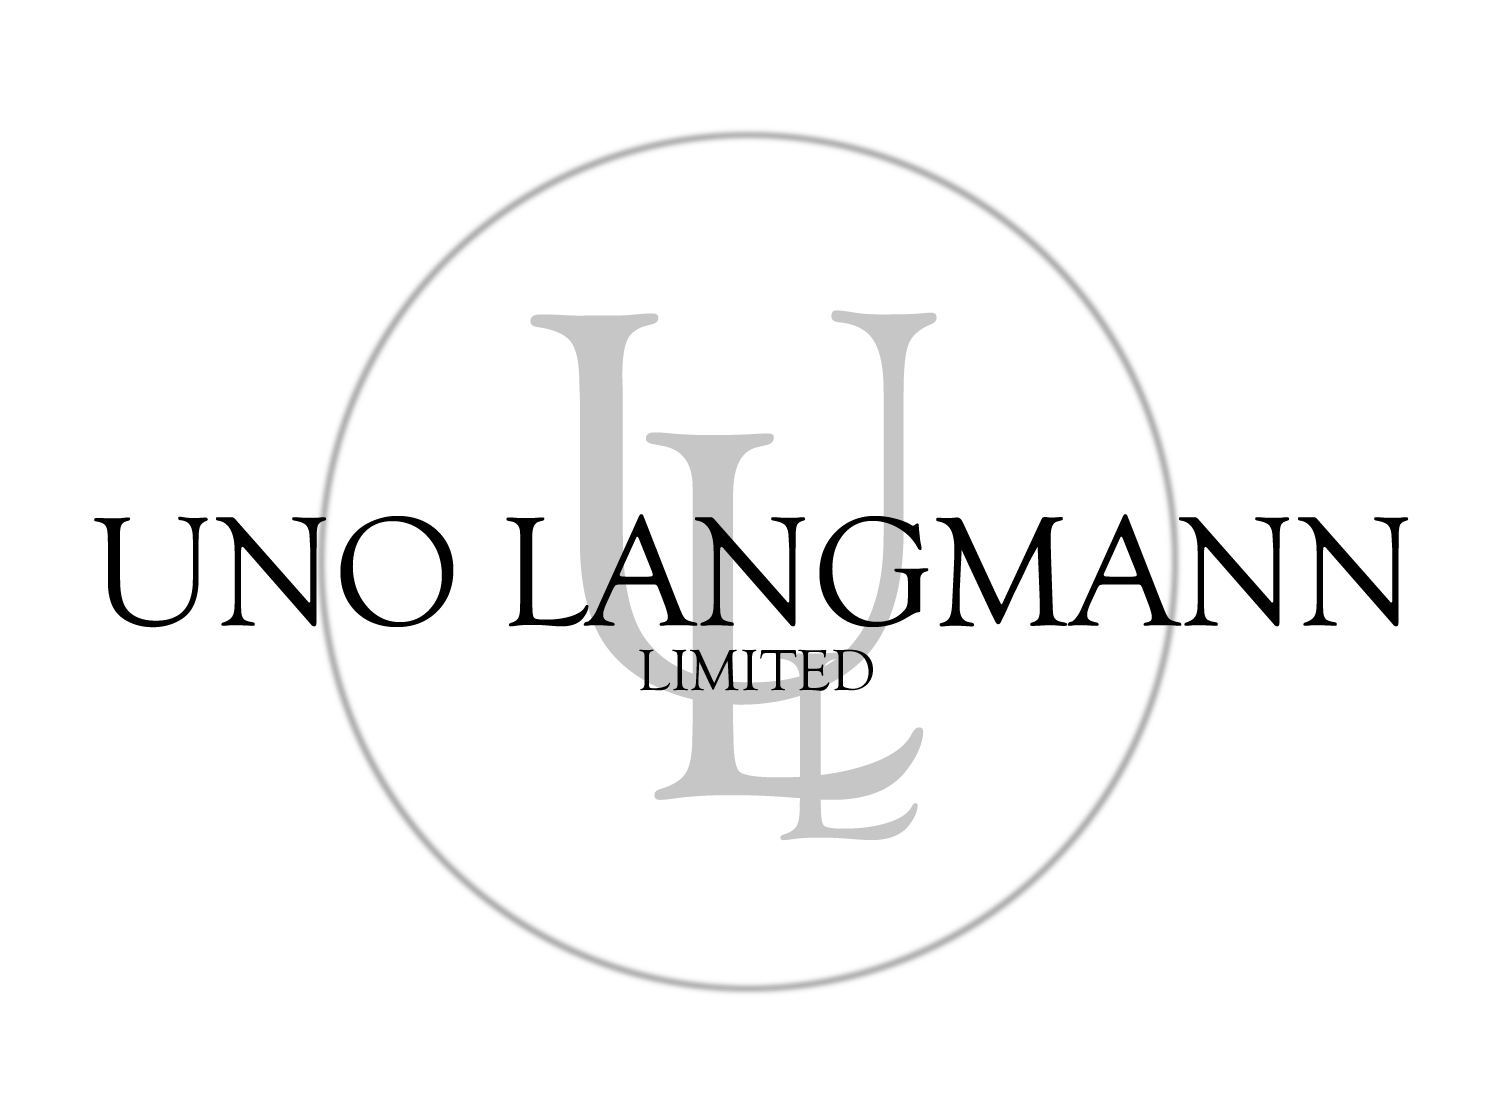 Uno Langmann Limited | Fine Art and Antique Dealers